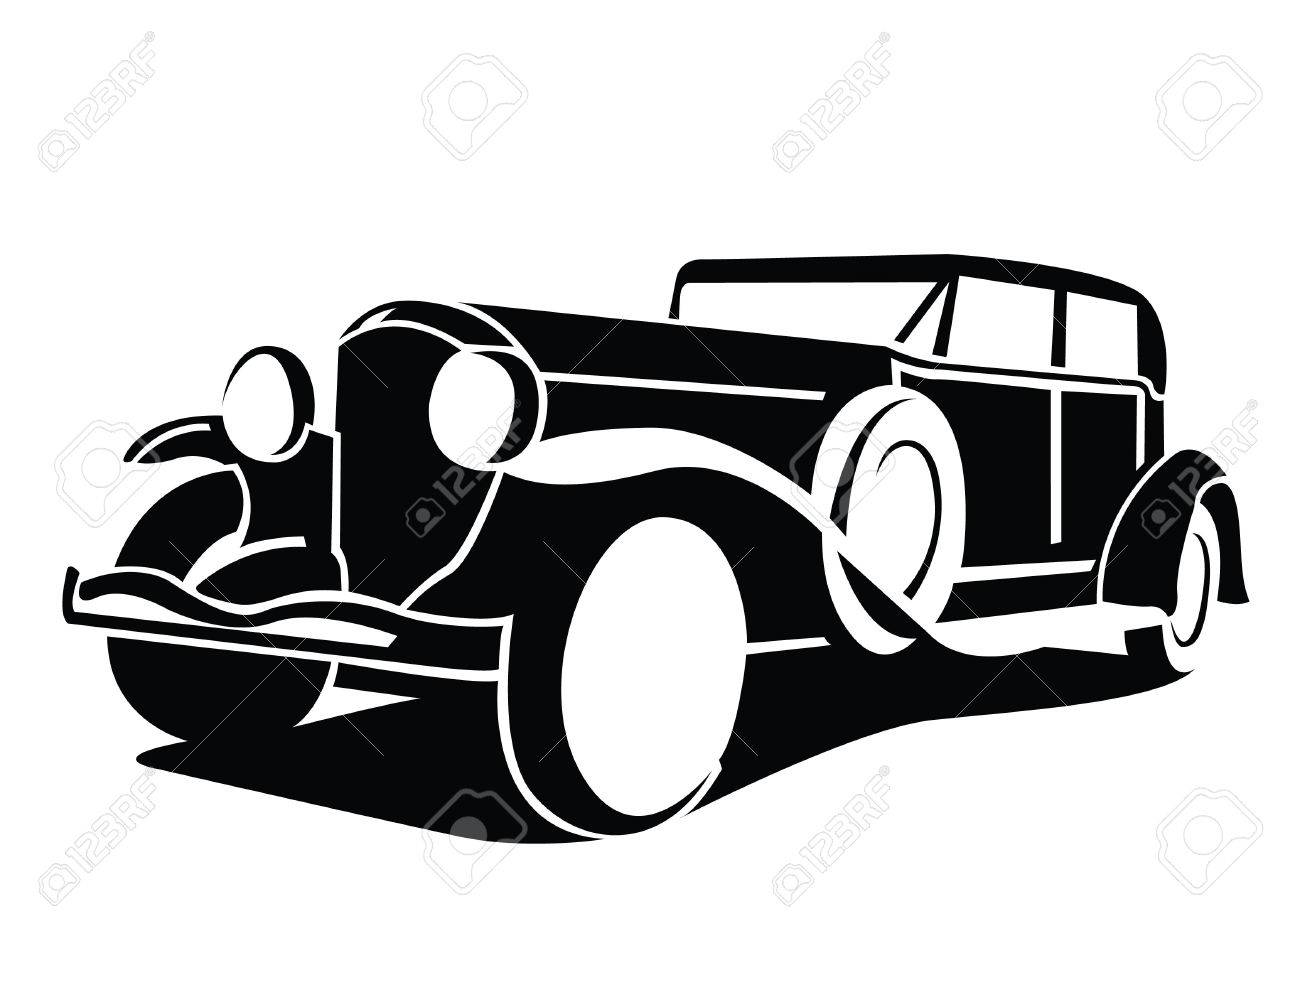 Classic Car Symbol Royalty Free Cliparts, Vectors, And Stock ...